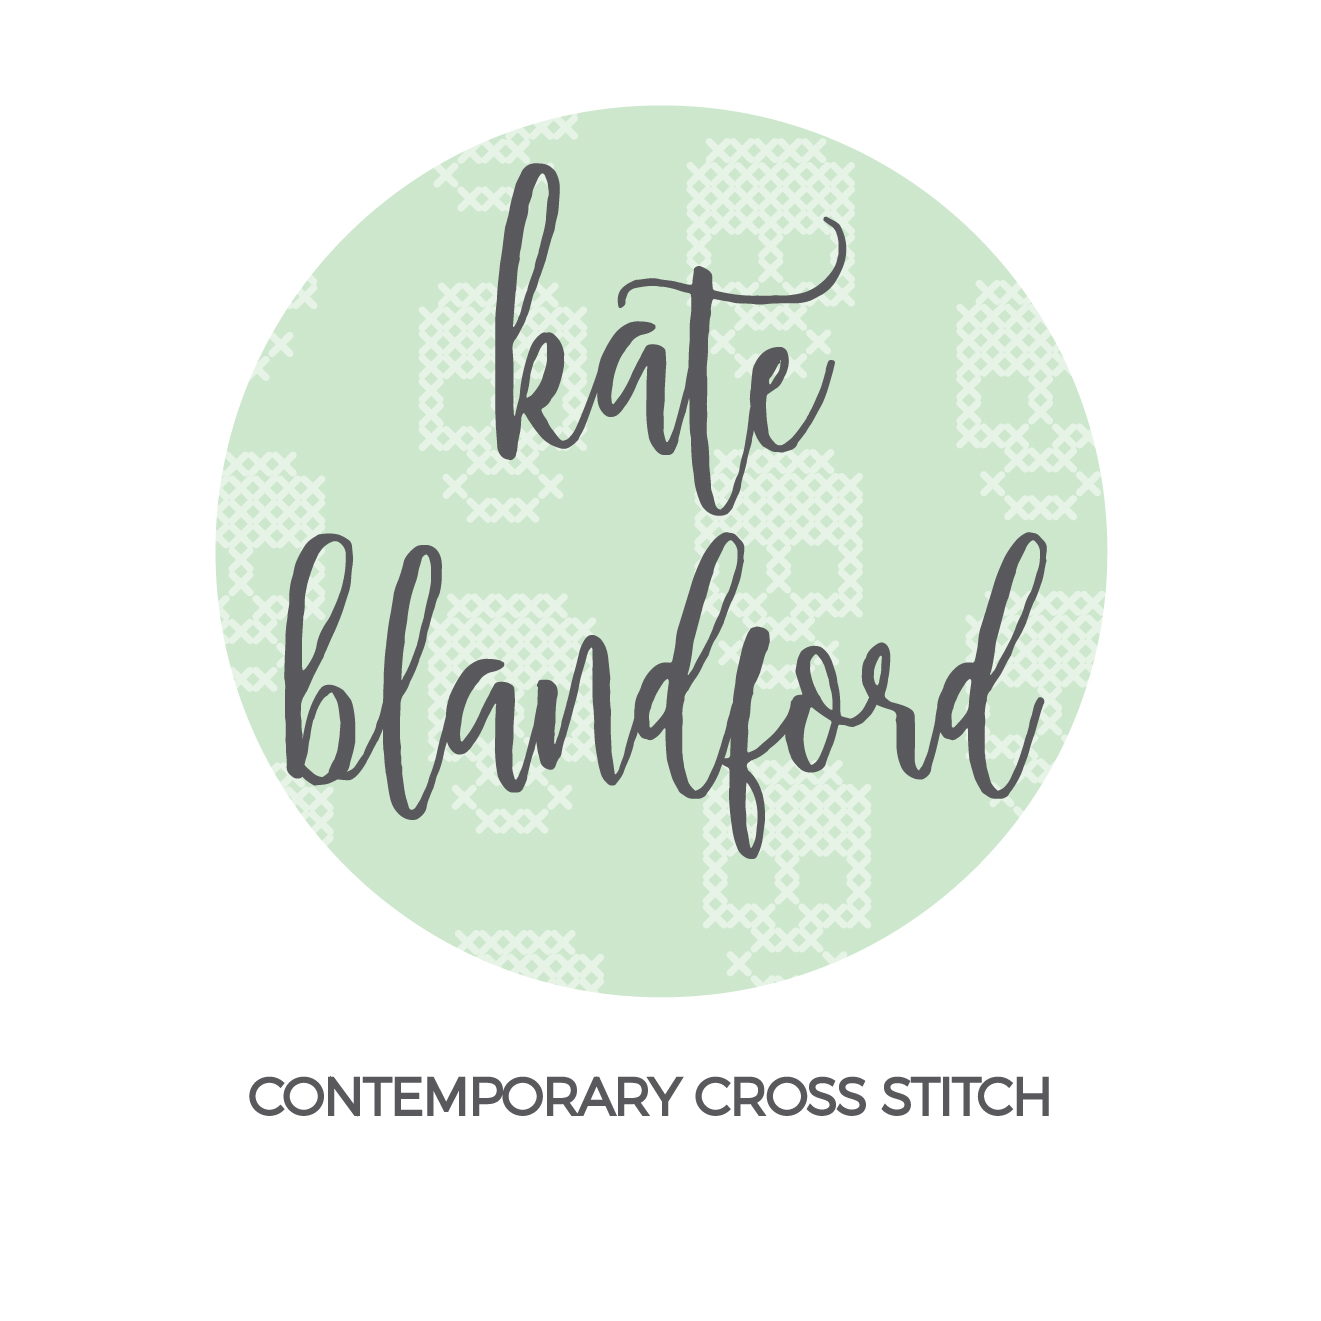 Kate Blandford - cross stitch and stuff